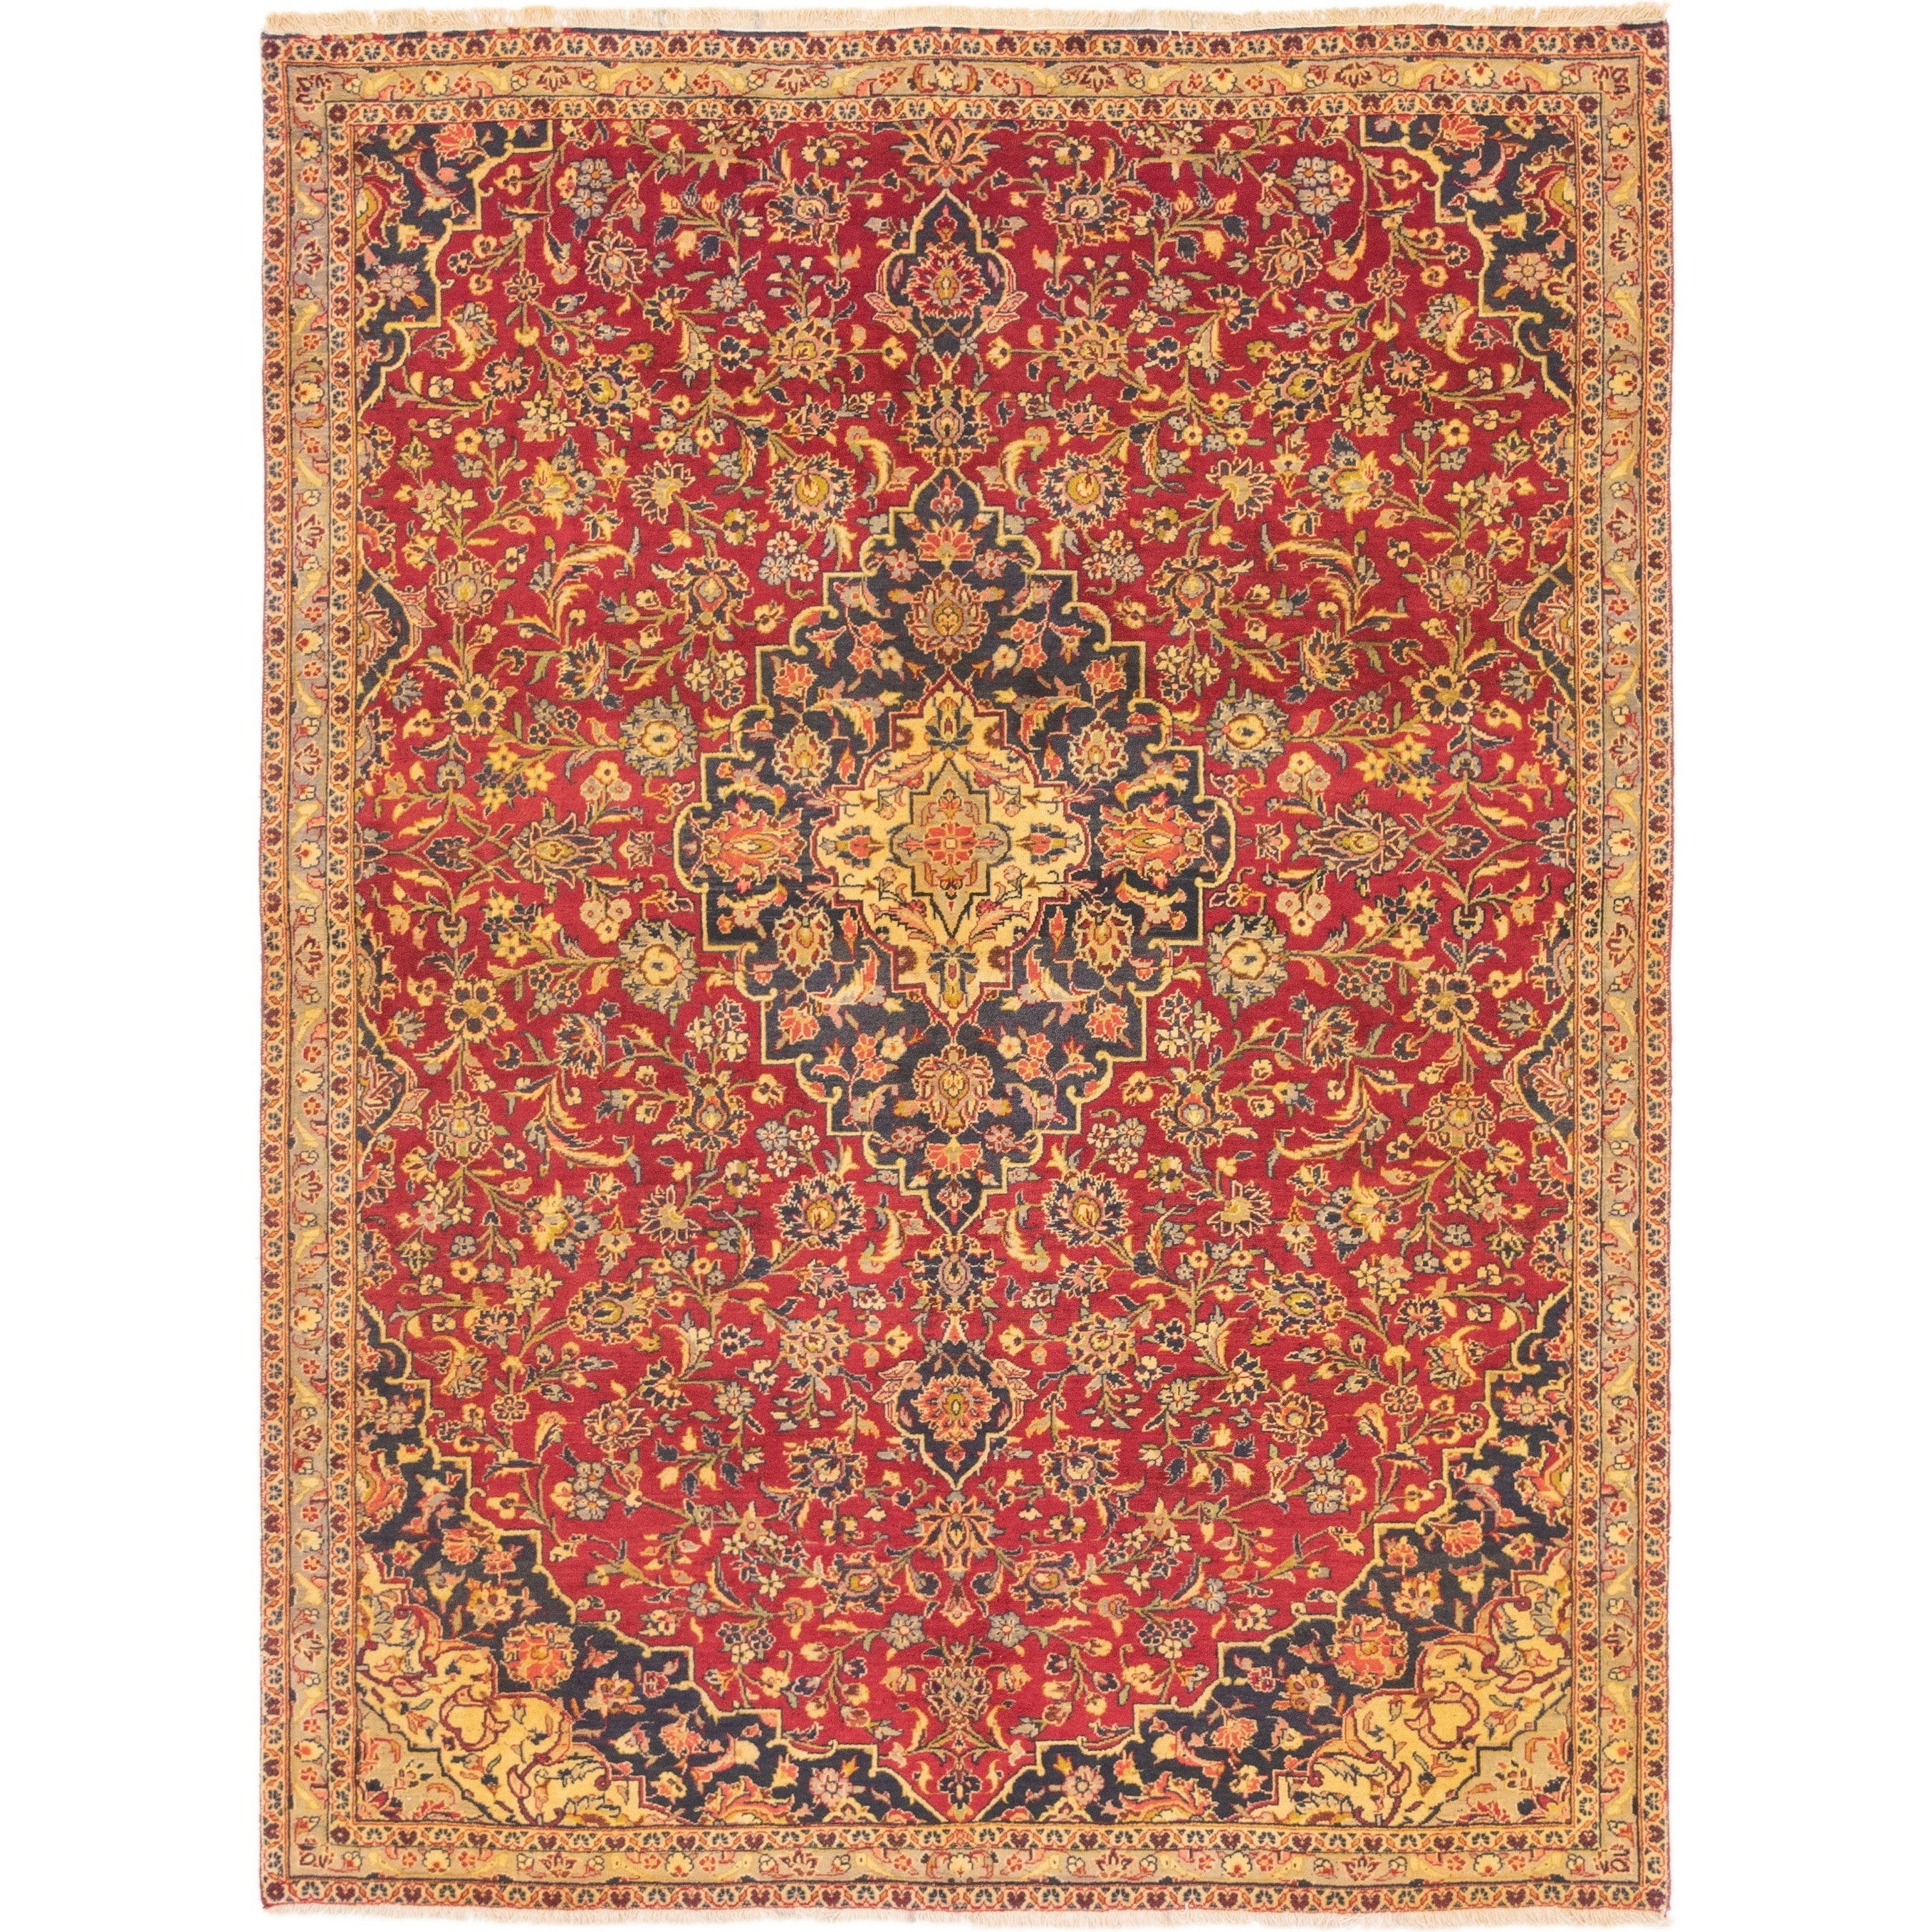 Hand Knotted Kashan Semi Antique Wool Area Rug - 7 x 9 4 (Red - 7 x 9 4)